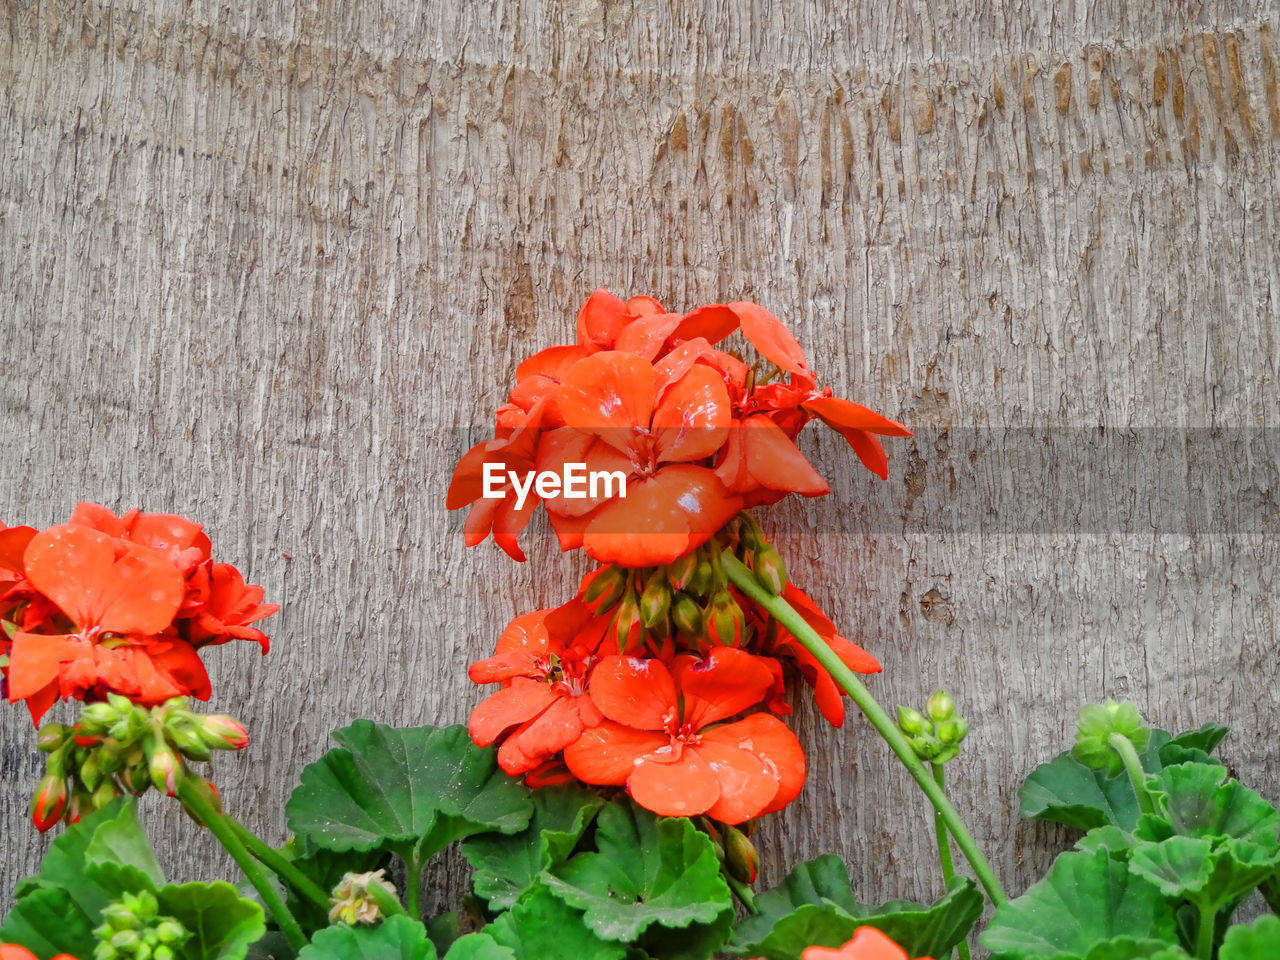 flower, growth, beauty in nature, fragility, petal, freshness, orange color, plant, nature, flower head, blooming, no people, red, outdoors, leaf, day, close-up